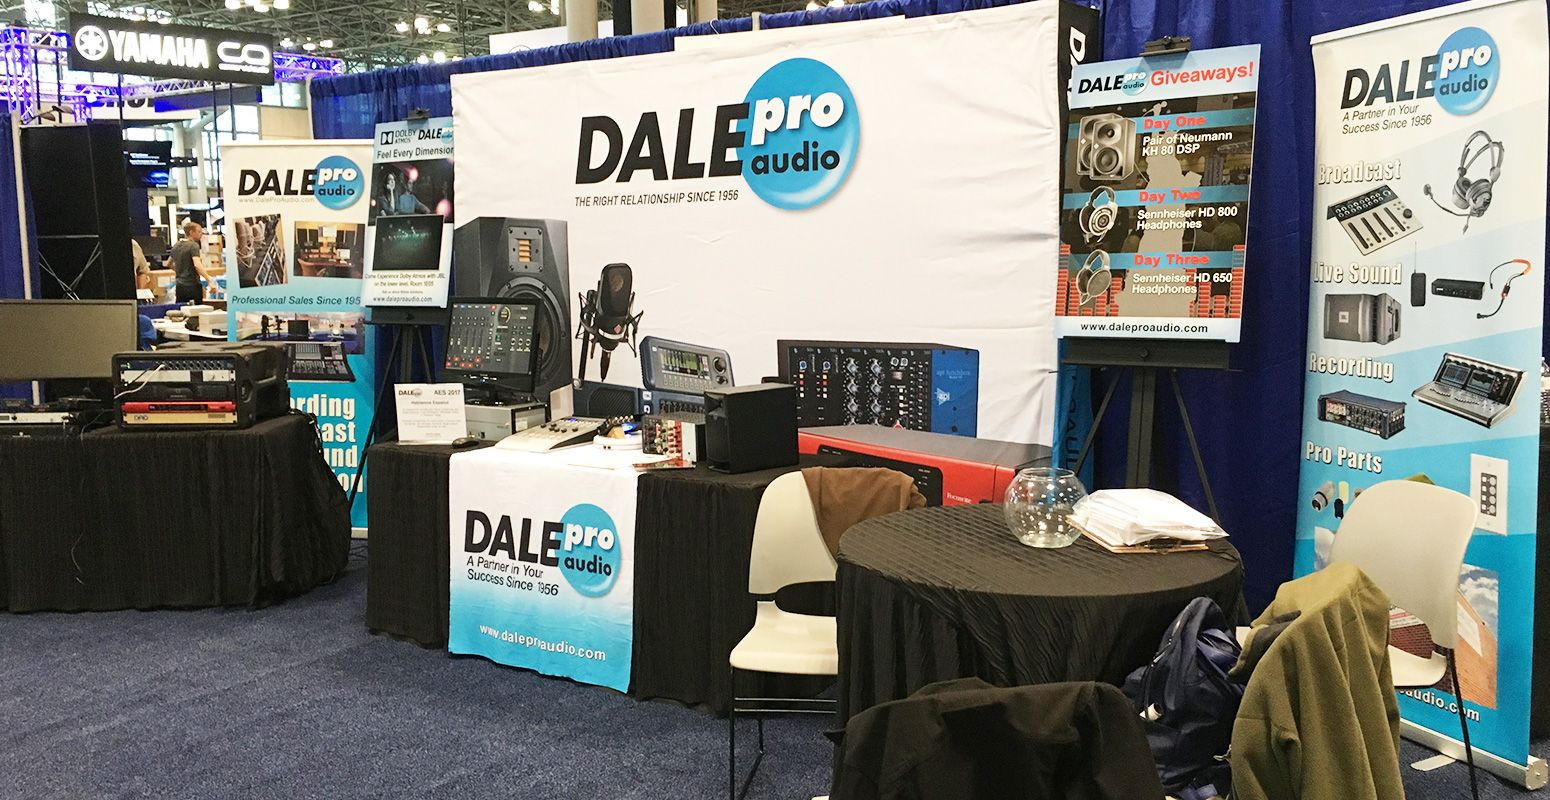 143rd AES Convention and NAB New York 2017 Show - Dale Pro Audio